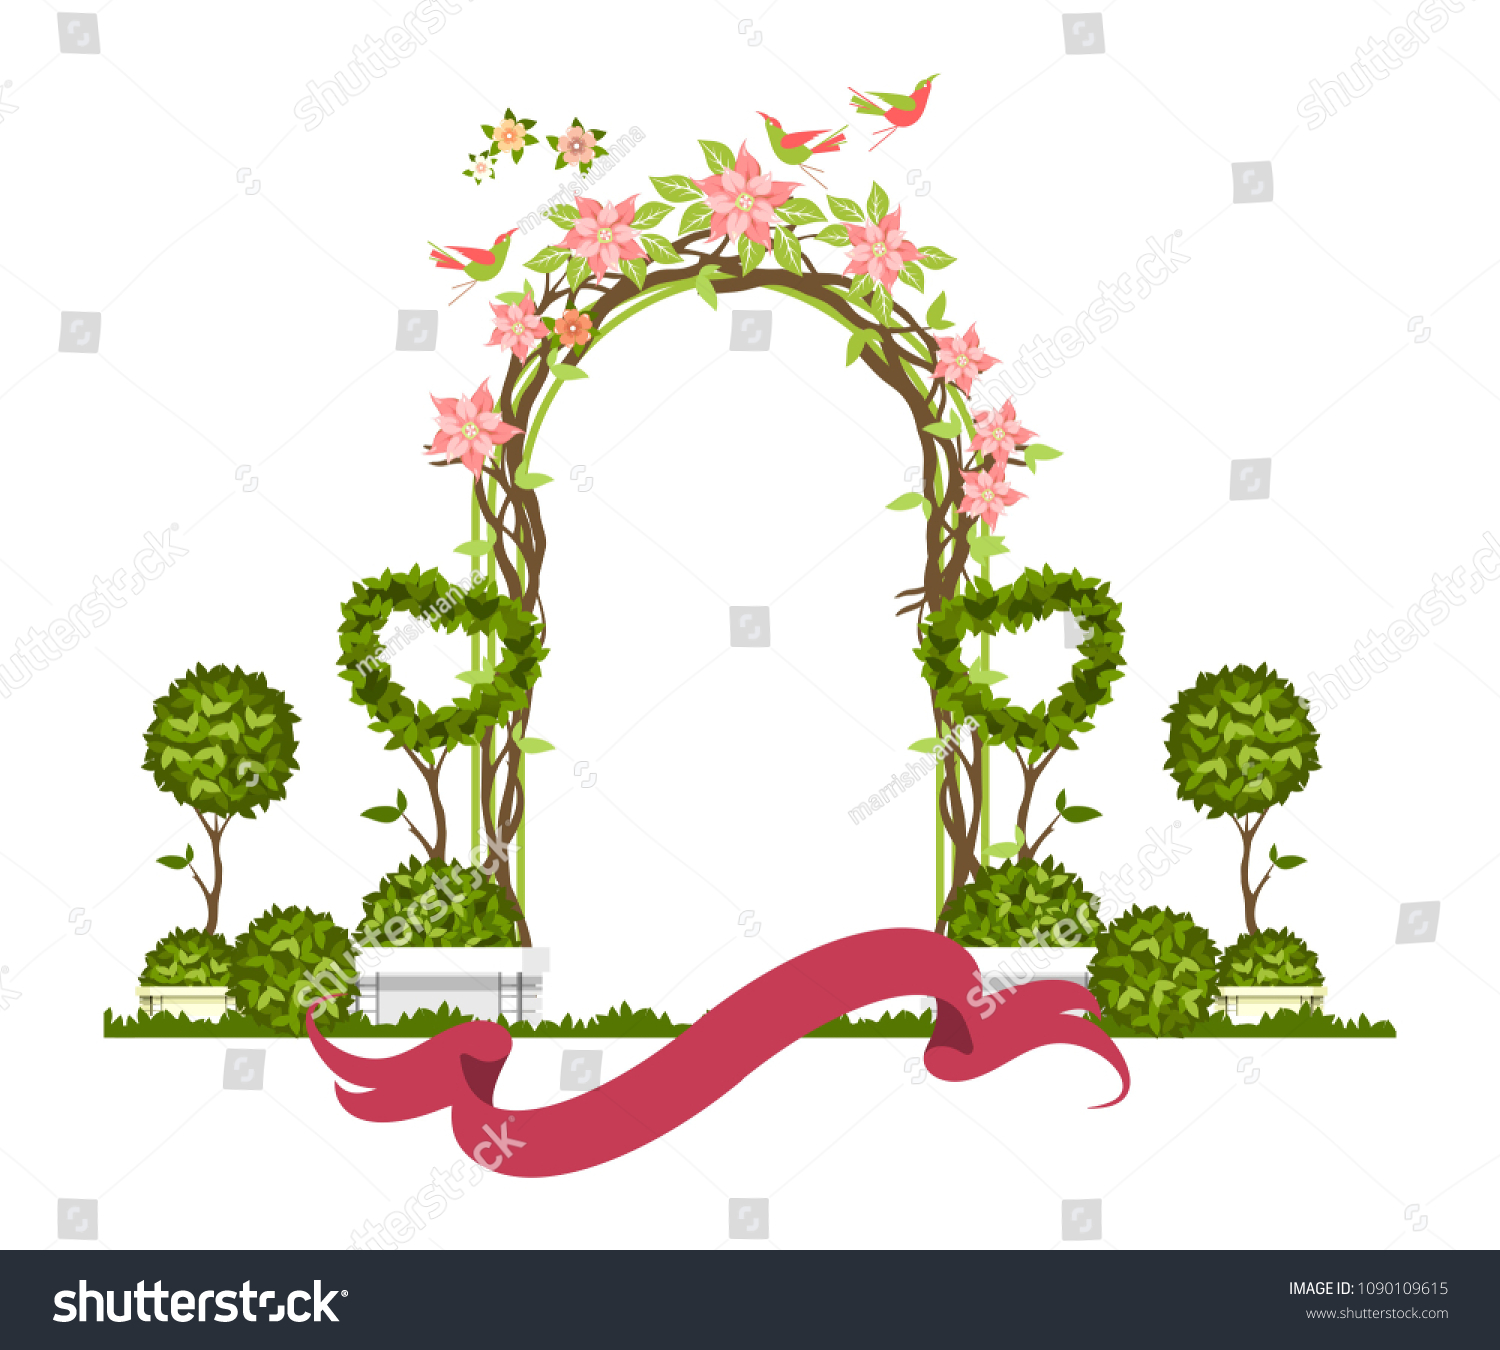 Wedding Arch On White Background Plant Stock Vector Royalty Free 1090109615